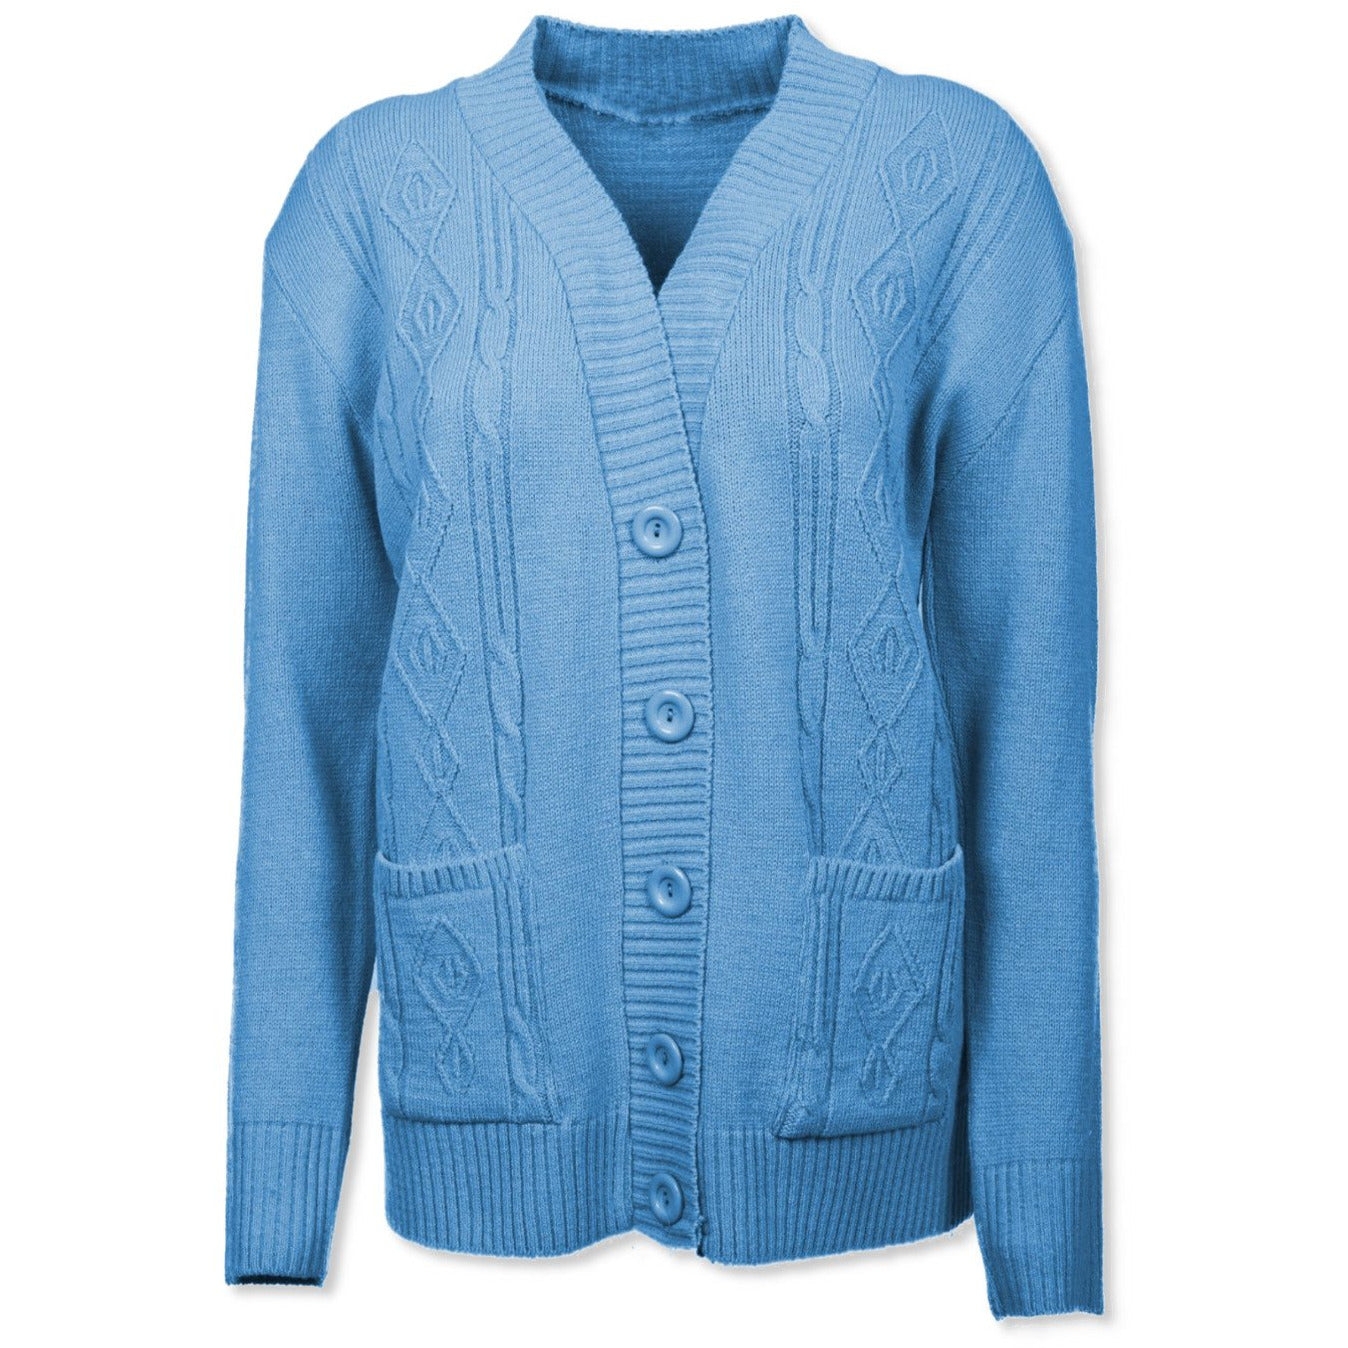 Sky Blue Cable Knit Cardigan - Kirkwood of Scotland